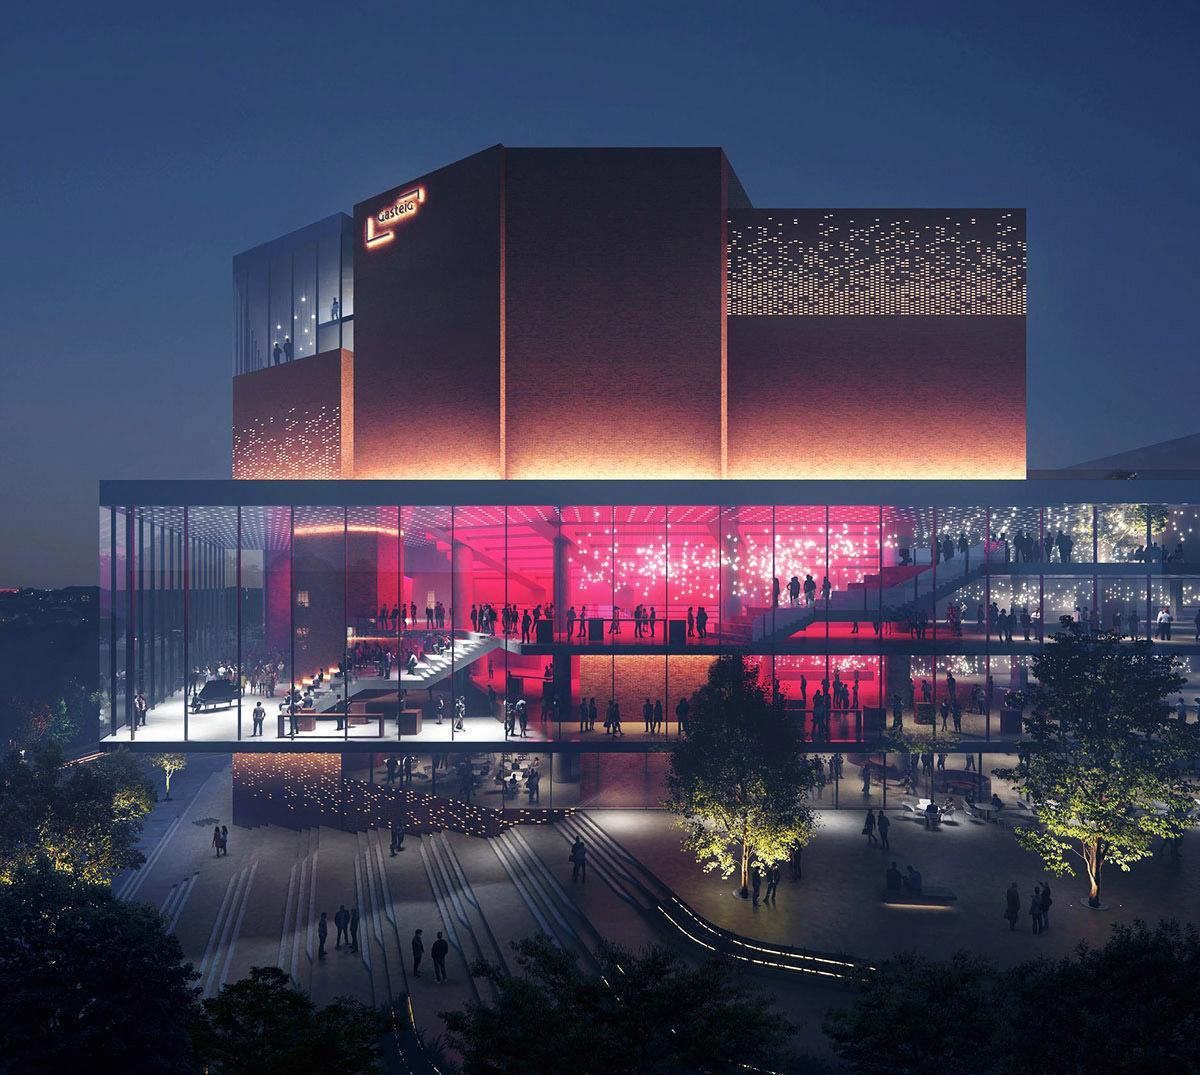 In a statement, Gasteig director Max Wagner said he expected the renovated centre would